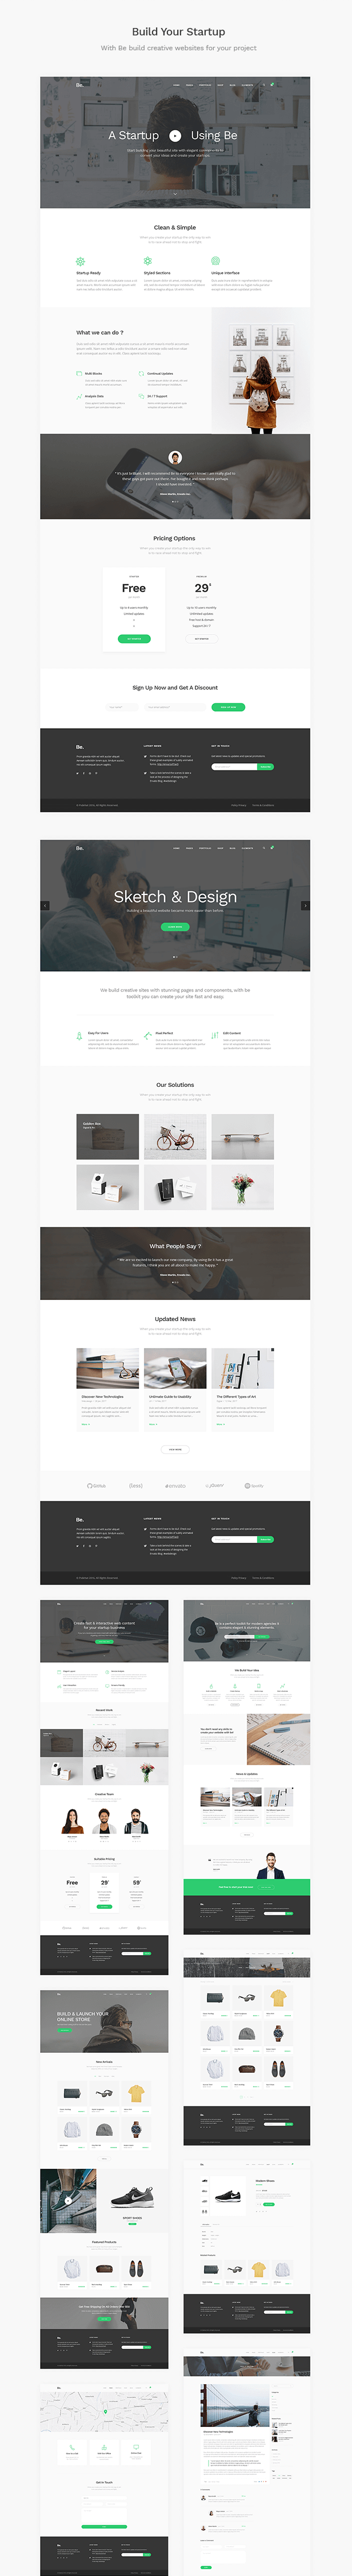 Be - Startup Business HTML Template - 3